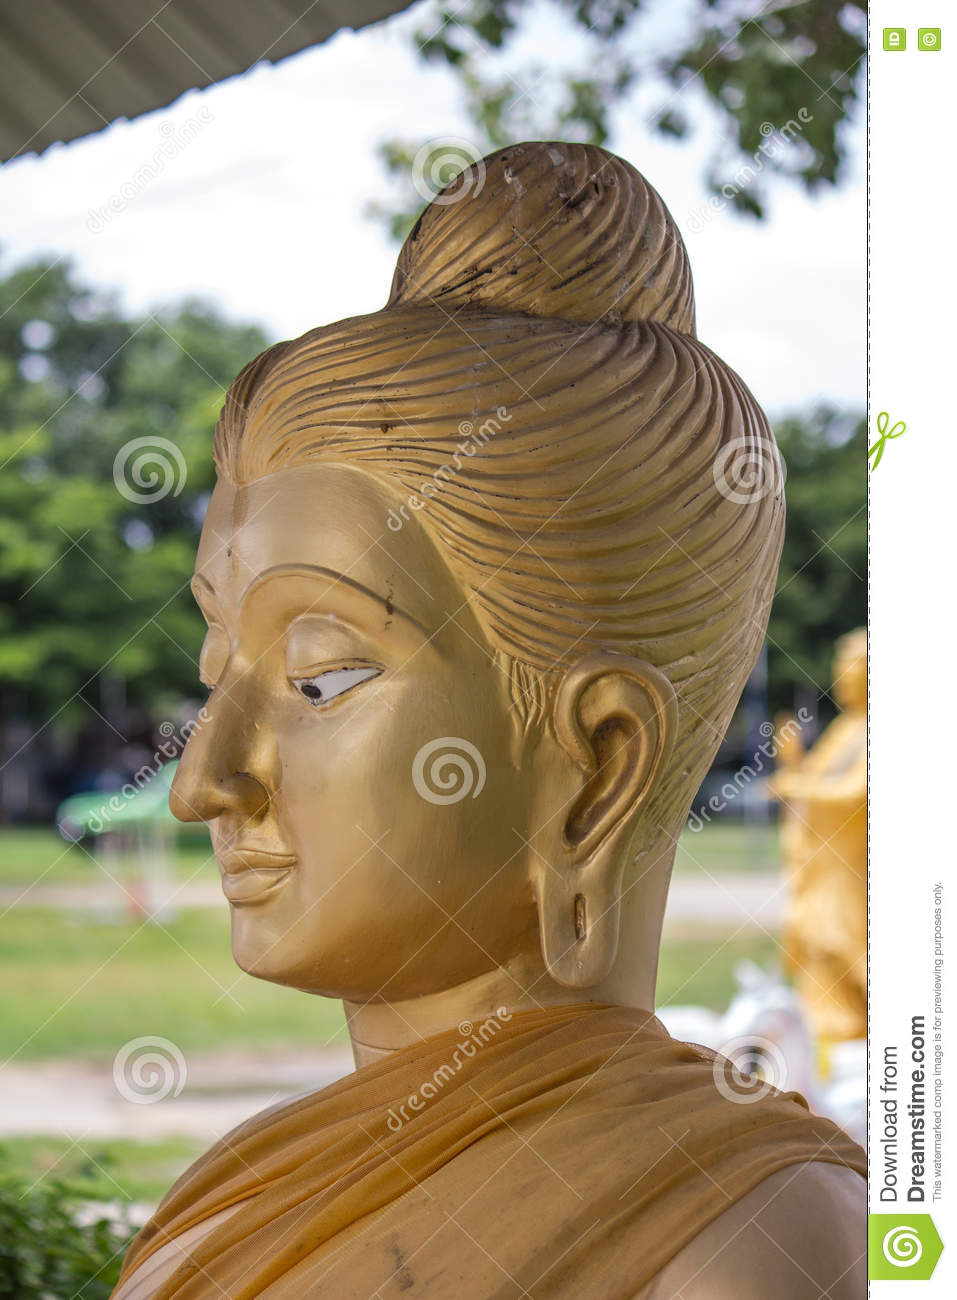 head of buddha Embed (for wordpresscom hosted blogs and archiveorg item  tags.